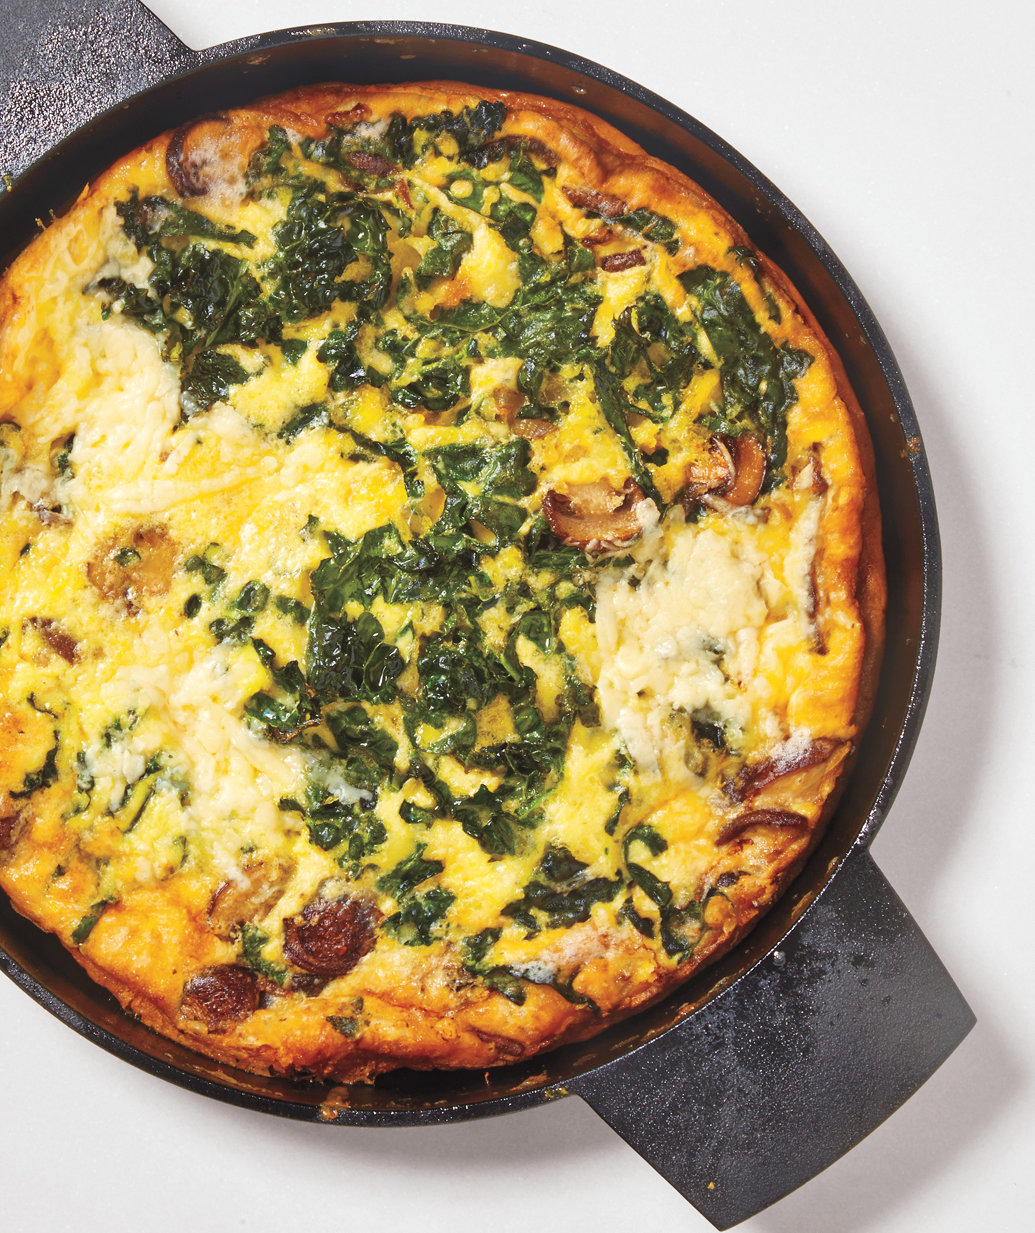 Mushroom, Kale, and Cheddar Frittata | Real Simple